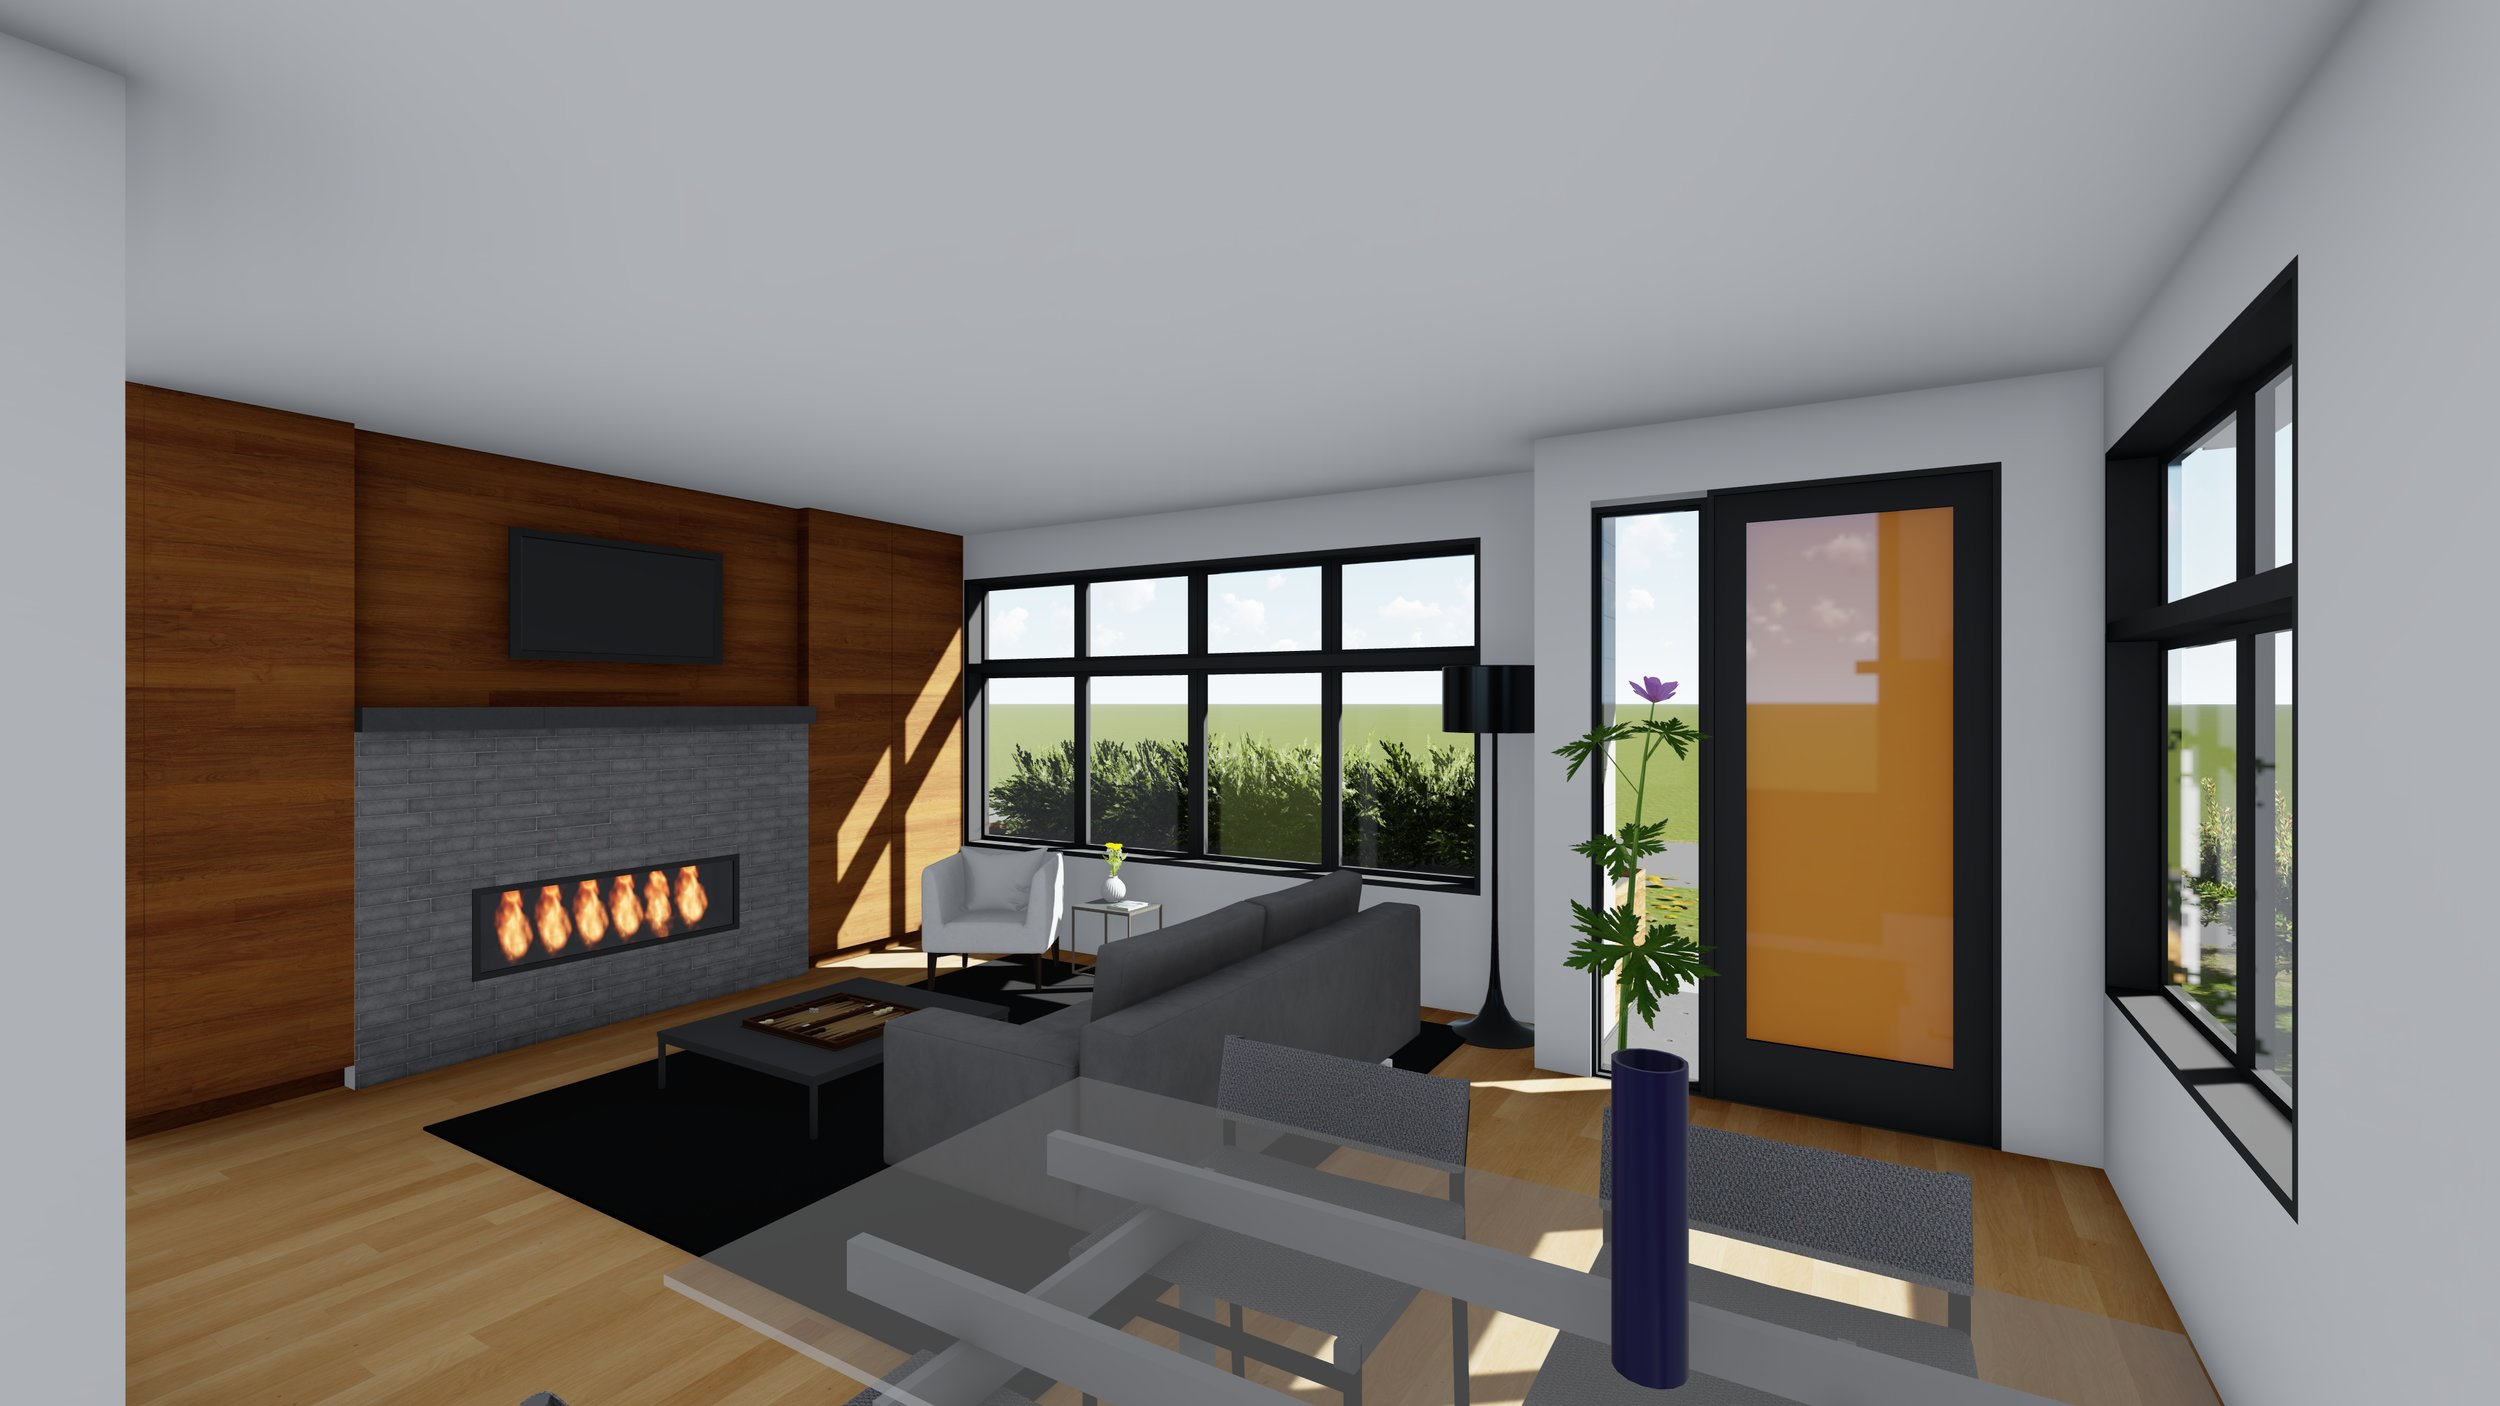 santa-cruz-architecture-modern-home-interior.jpg